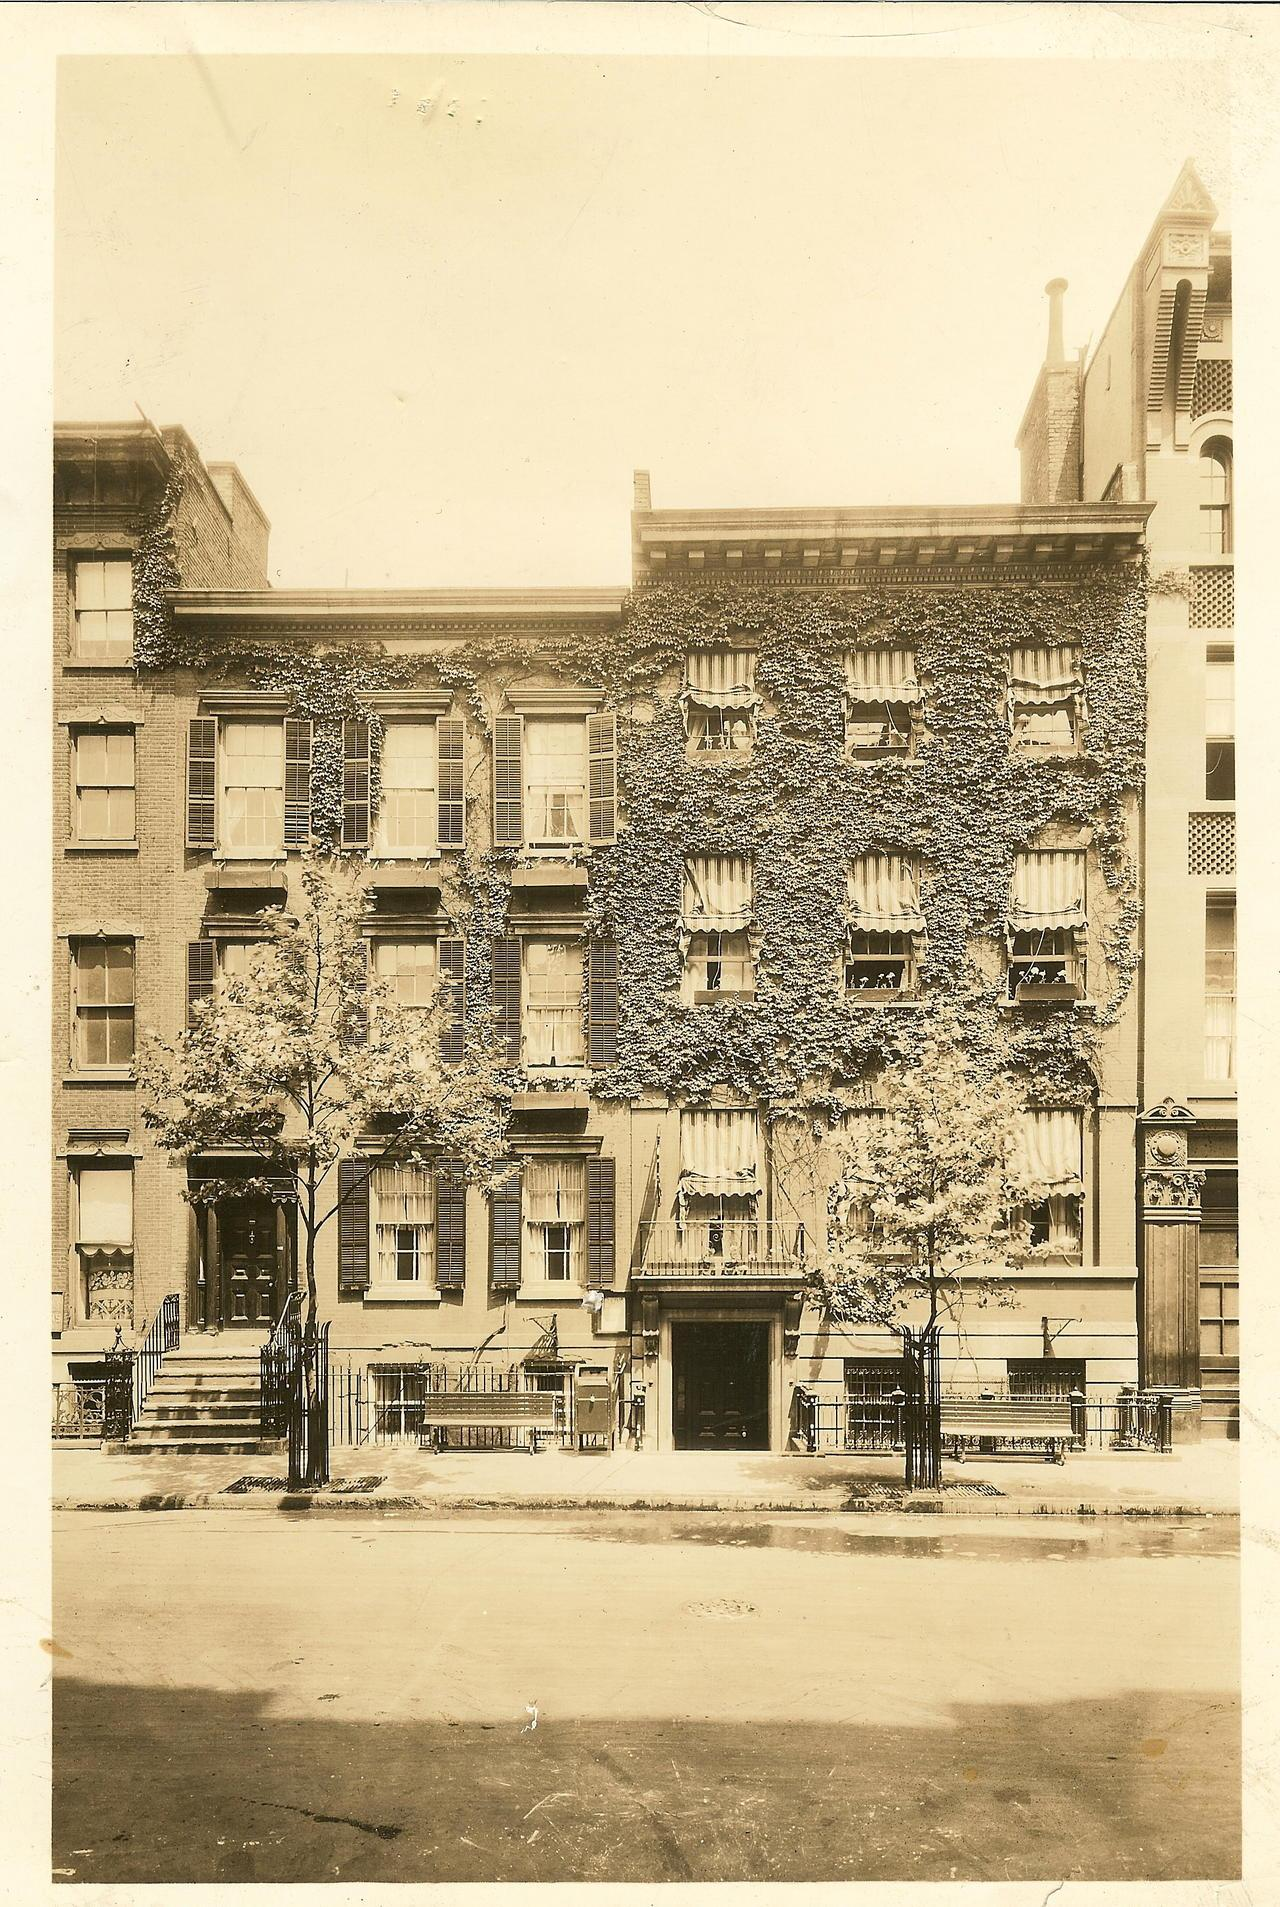 Henry Street Settlement Historical Photo of Building